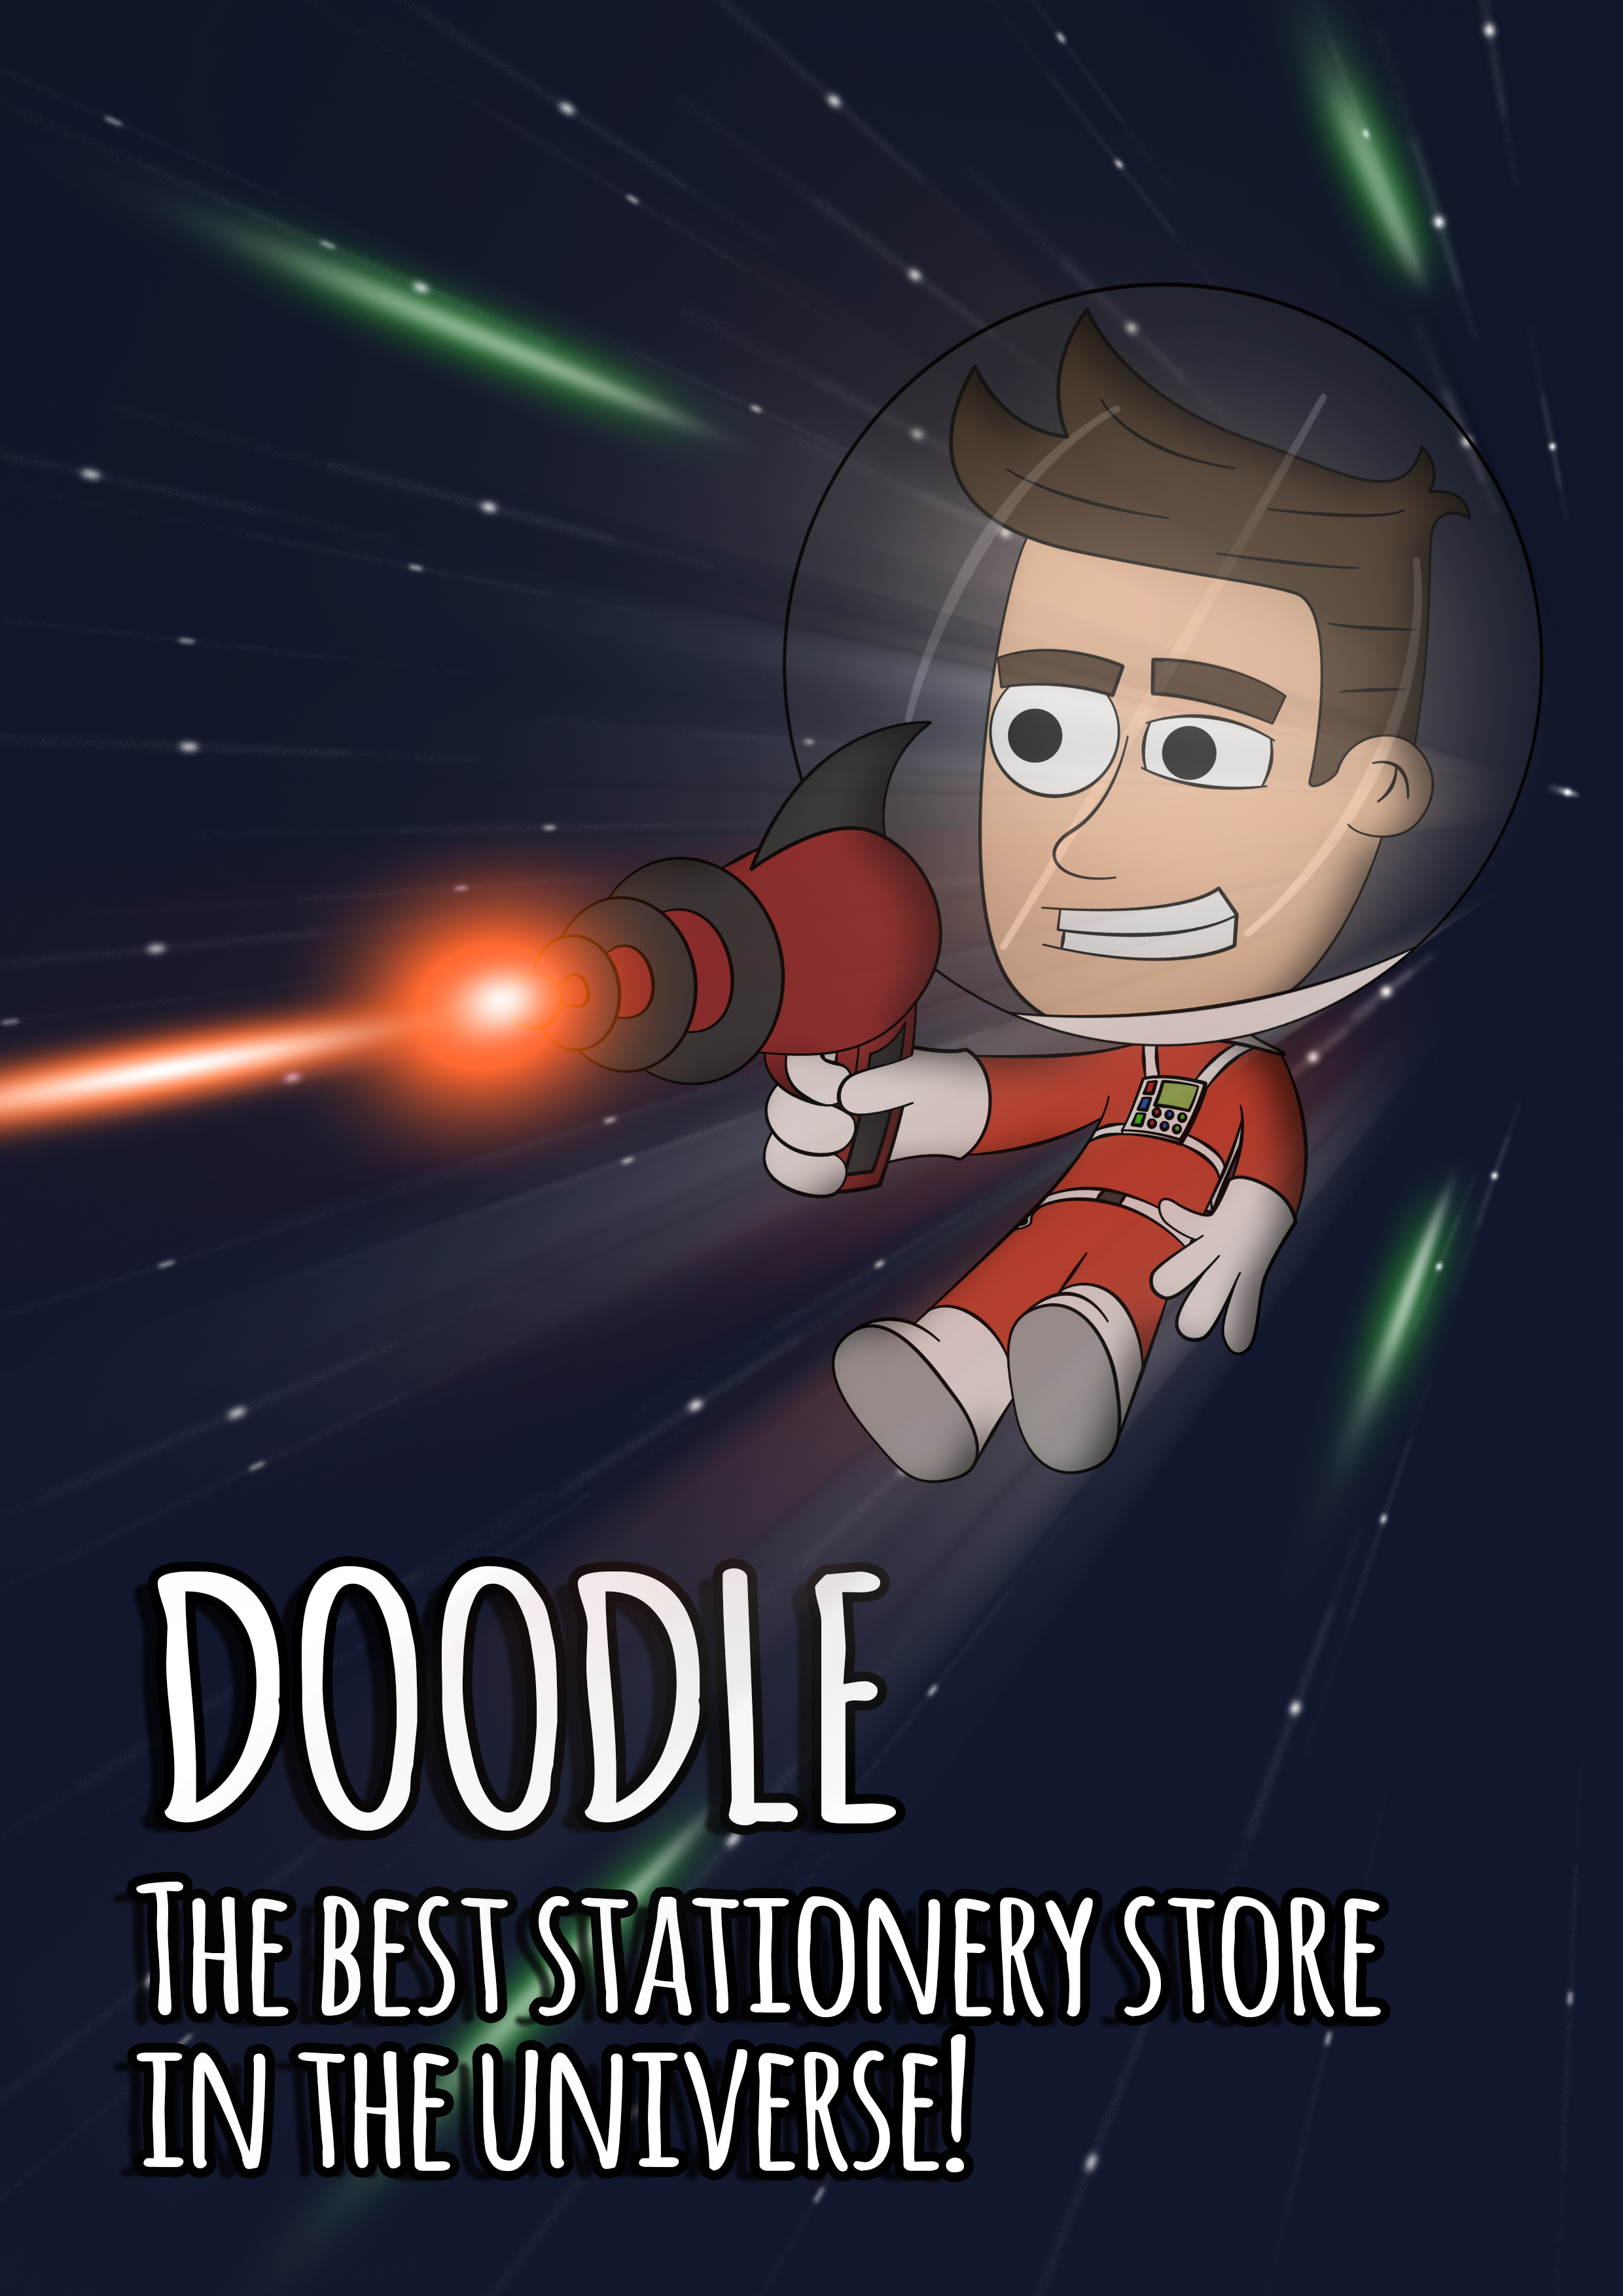 Doodle Character Poster 2